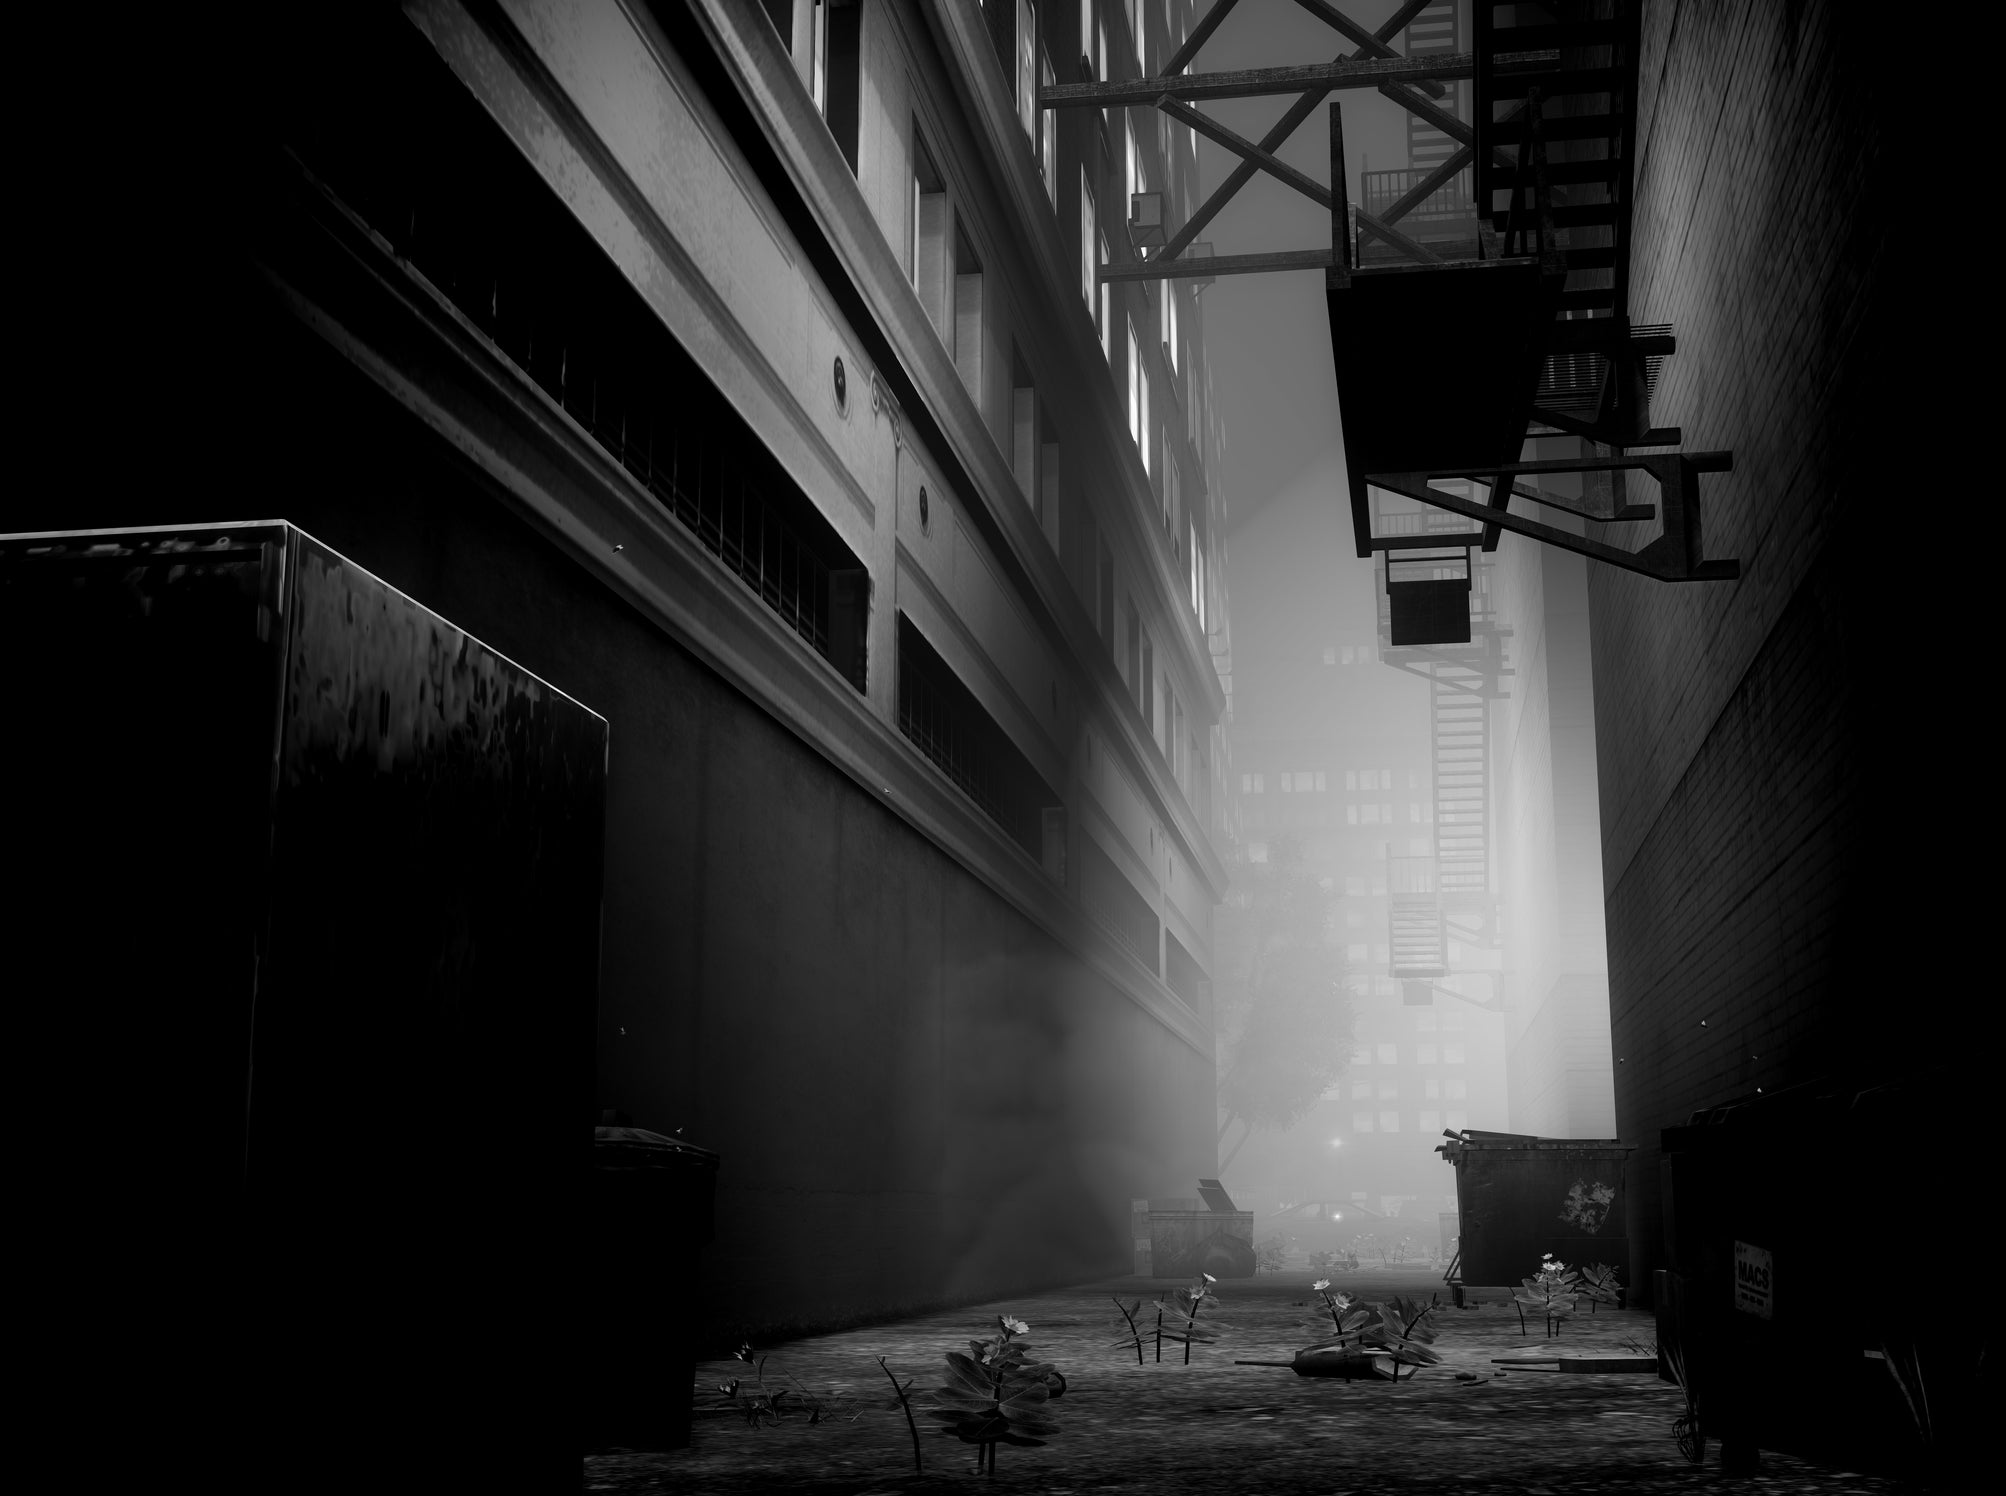 Grand Theft Auto IV Looks Marvellous in Black and White